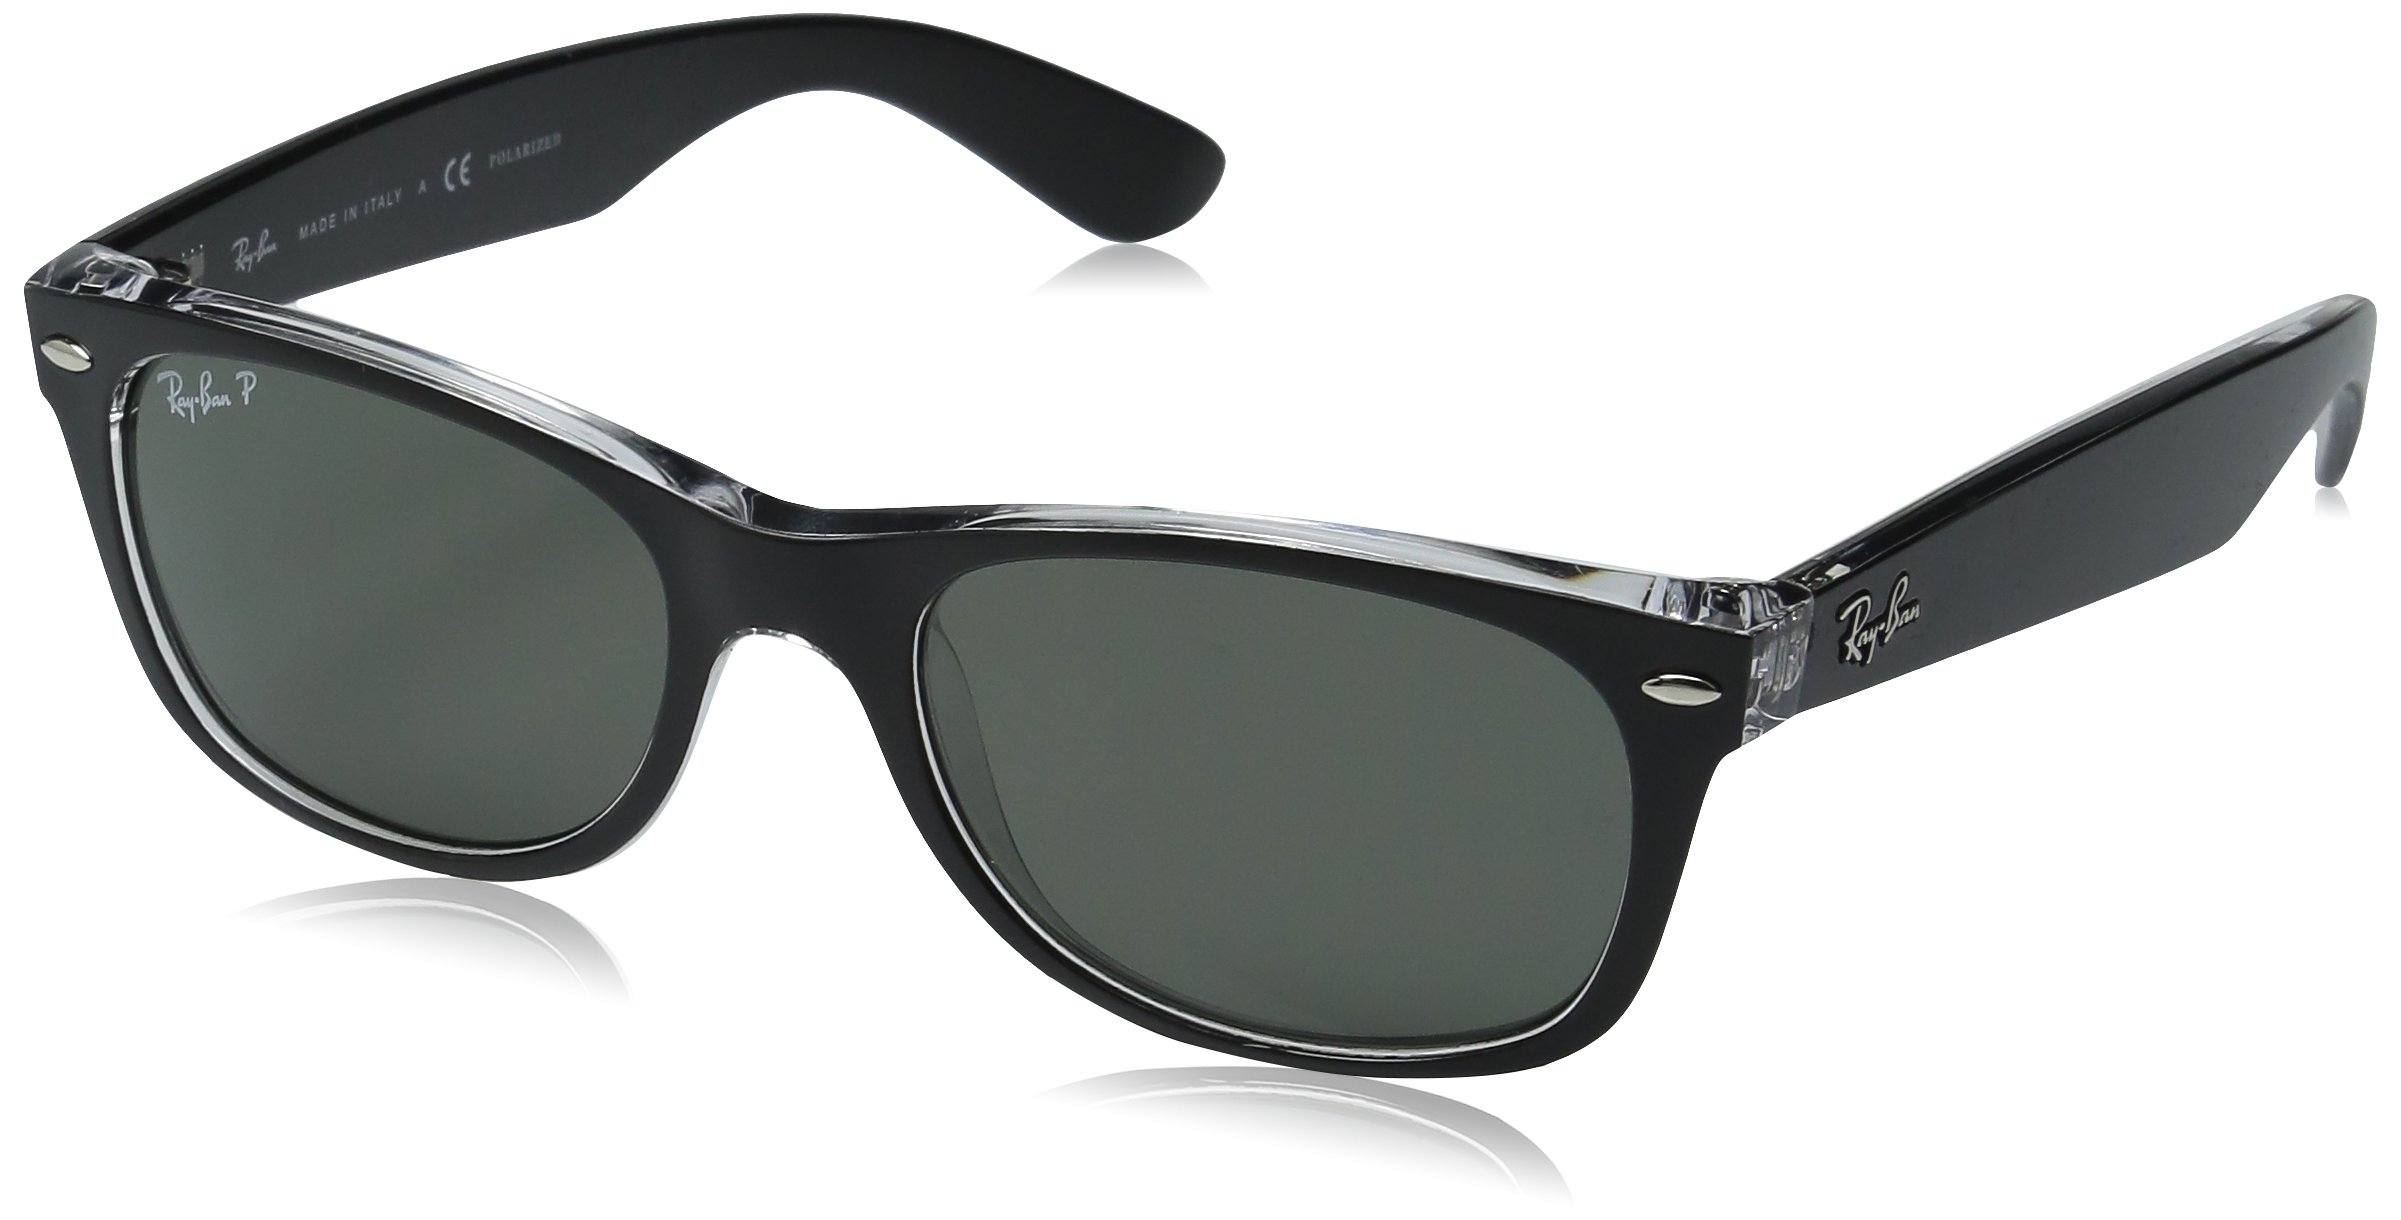 Ray-Ban Women's New Wayfarer Square Sunglasses, Top Black on Transparent, 58 mm by Ray-Ban